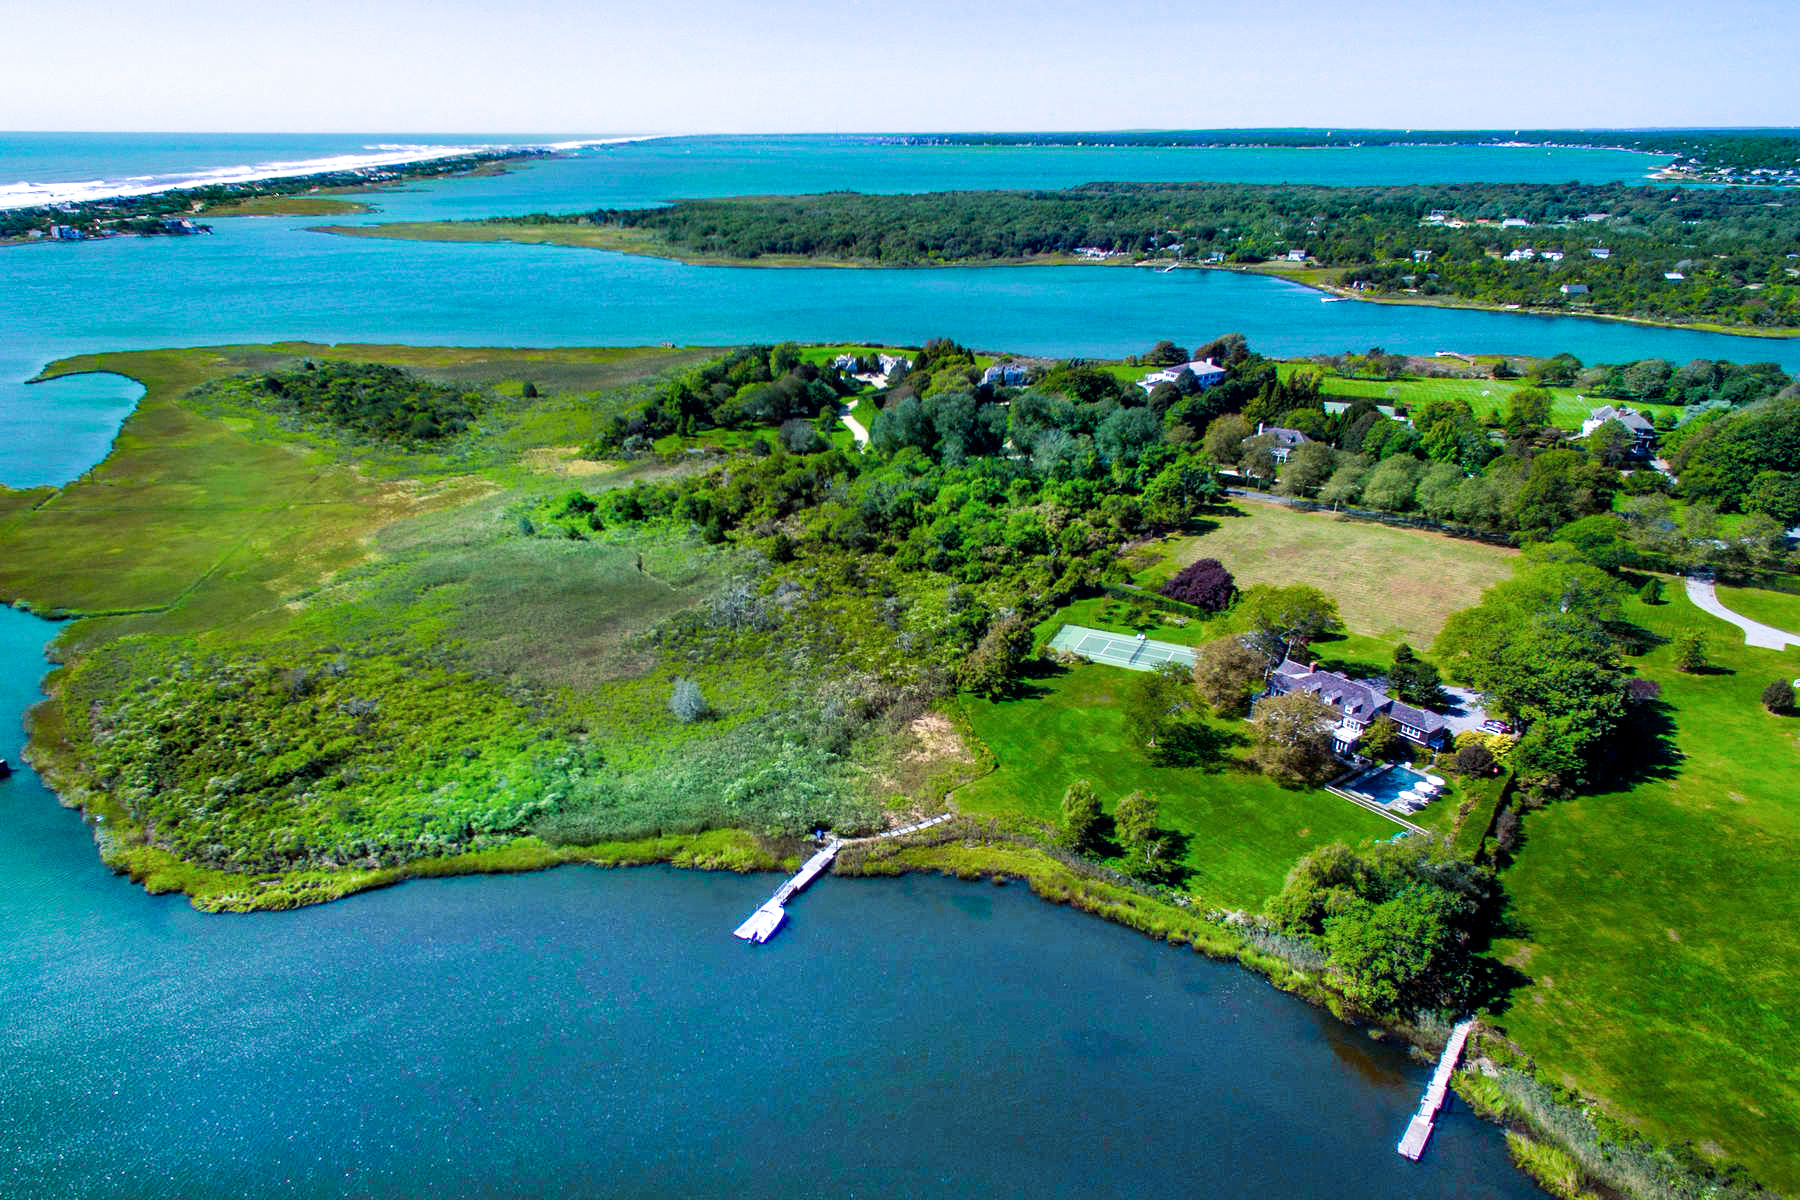 Single Family Homes for Active at Captains Neck Waterfront Estate W/ Dock 520 Captains Neck Lane Southampton, New York 11968 United States